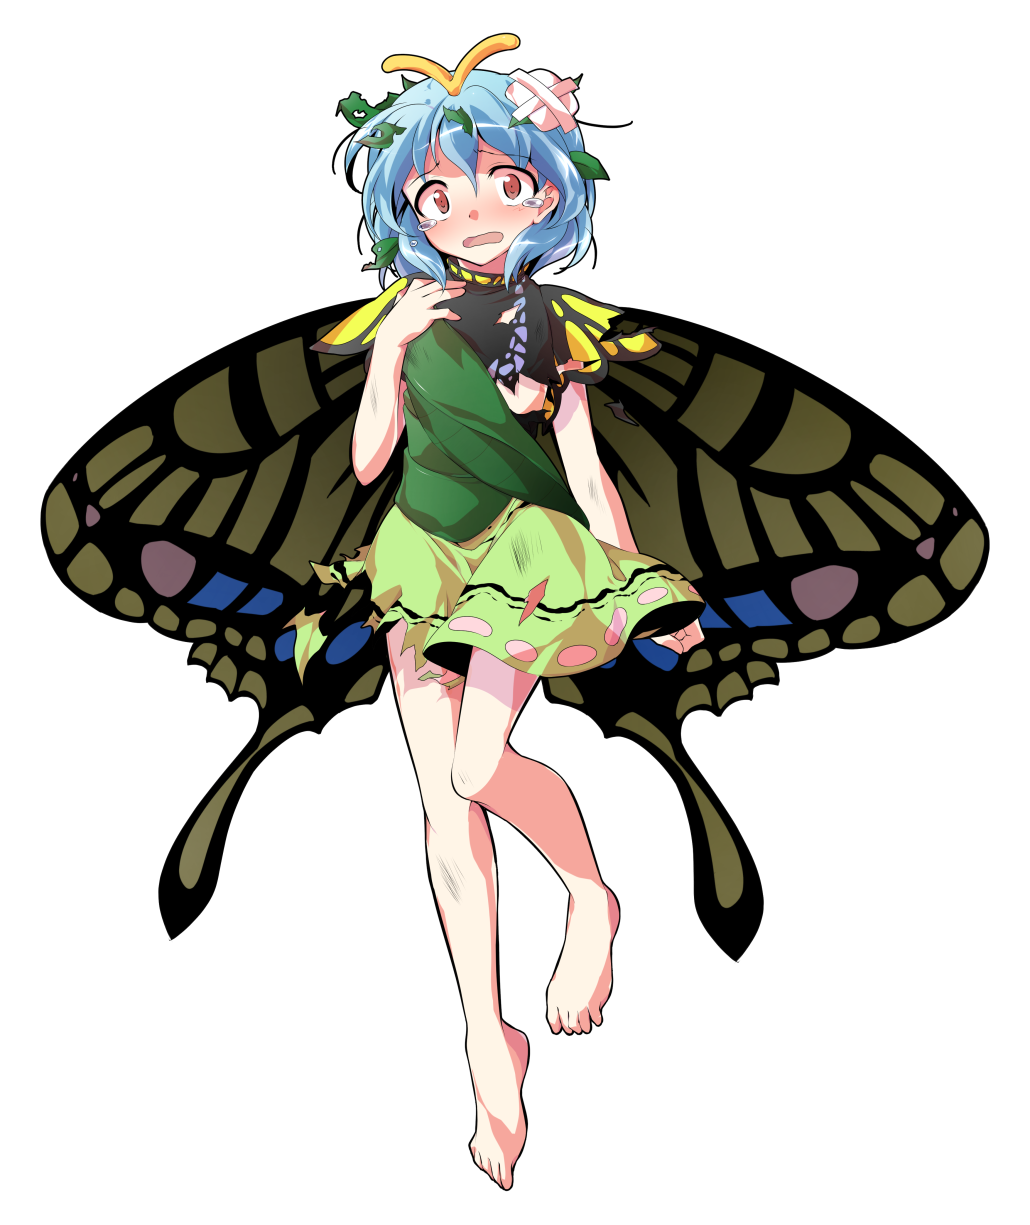 1girl alphes_(style) antennae aqua_hair bandaid barefoot brown_eyes butterfly_wings commentary_request dairi dirt dress eternity_larva fairy flat_chest full_body hand_on_own_chest highres leaf leaf_on_head multicolored multicolored_clothes multicolored_dress open_mouth parody simple_background solo style_parody tears torn_clothes touhou wings